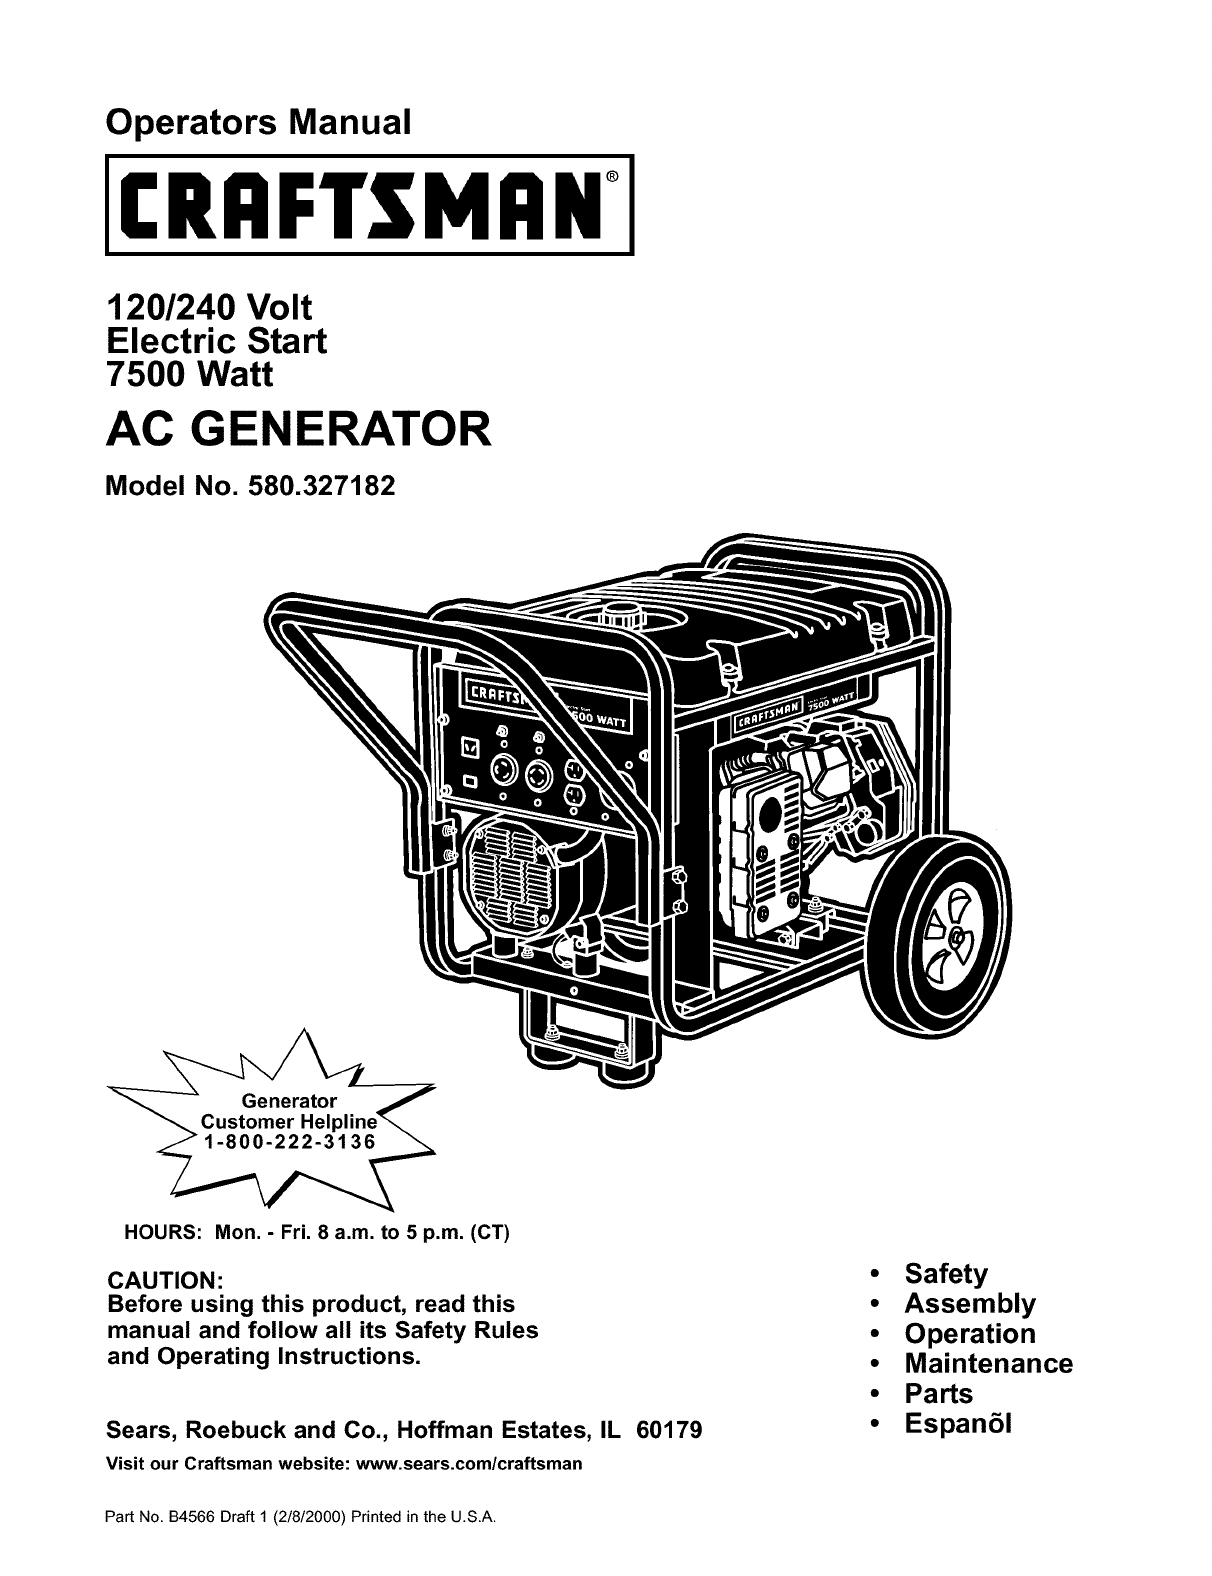 Craftsman 580327182 User Manual Ac Generator Manuals And Guides L0208249 Wiring Diagram For